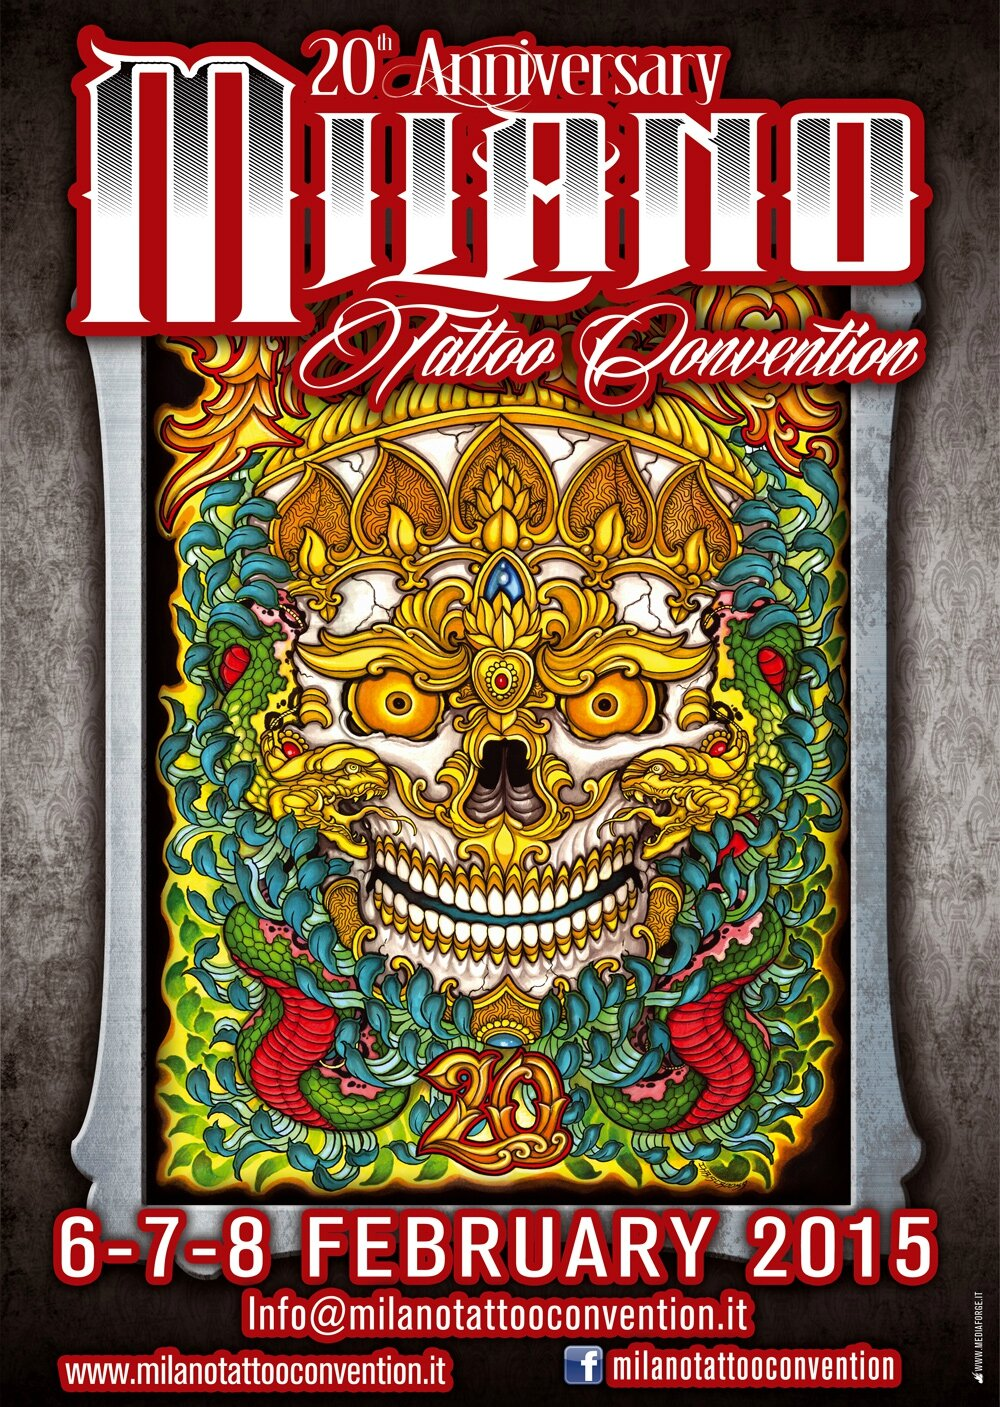 Milano Convention Tattoo actions 05 - 07 Février 2016